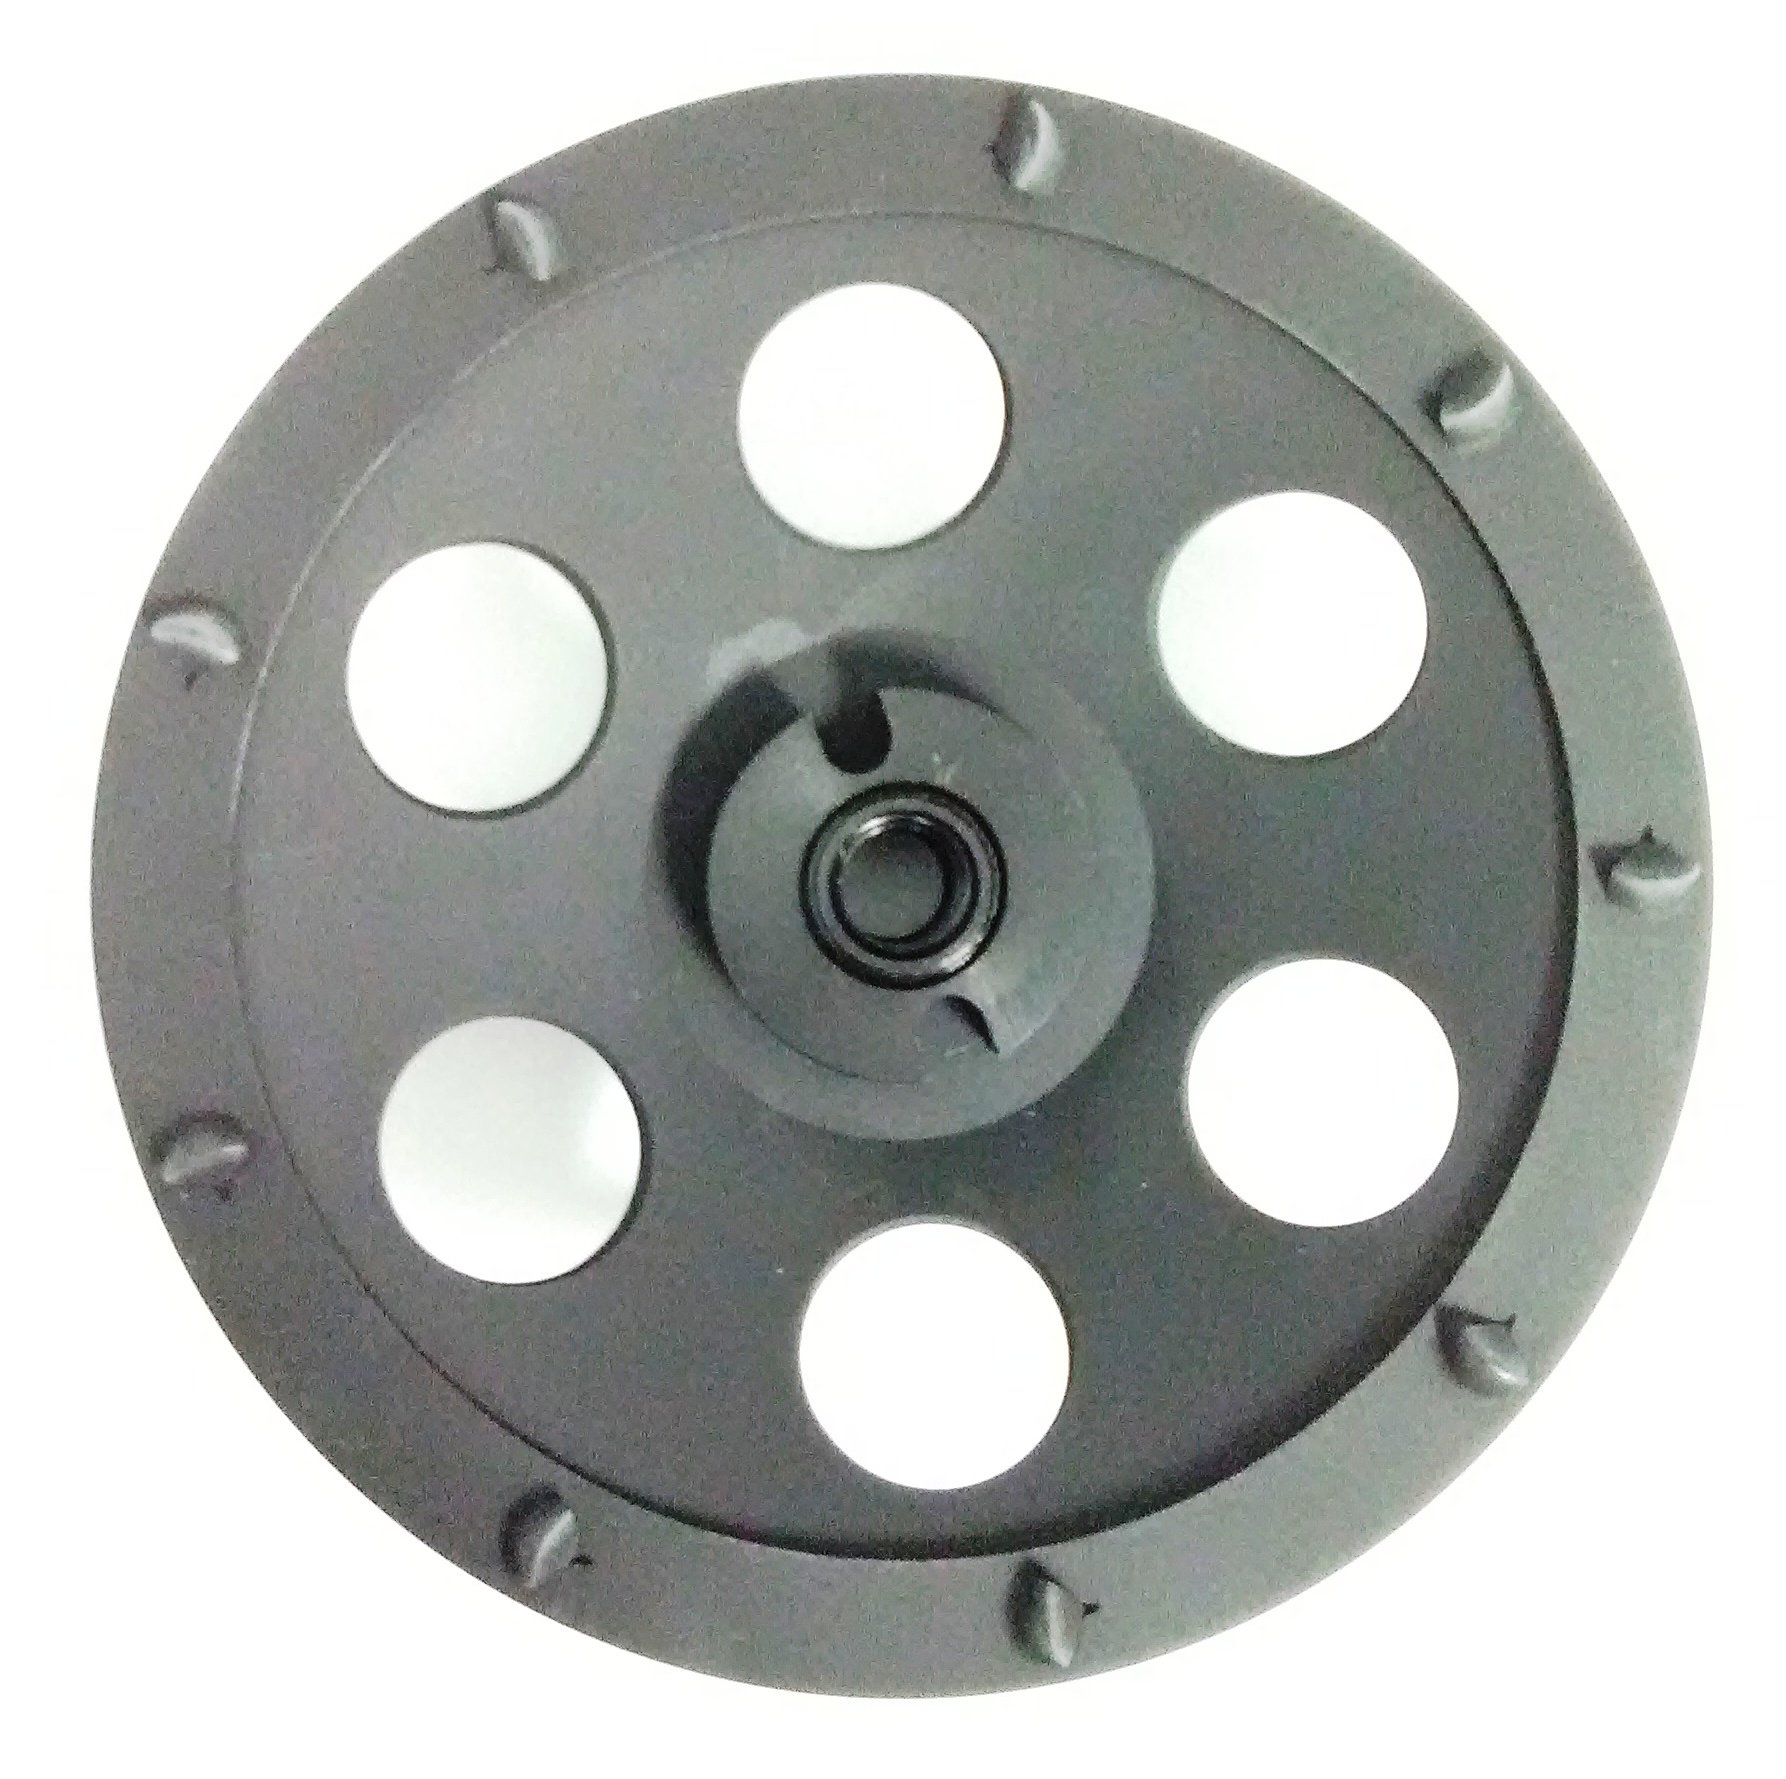 5-Inch PCD Cup Wheel Grinder 5/8''-11 Threaded - 8 Segments - Poly Crystaline Cup for Removing Epoxy, Glue, Paint and Mastic